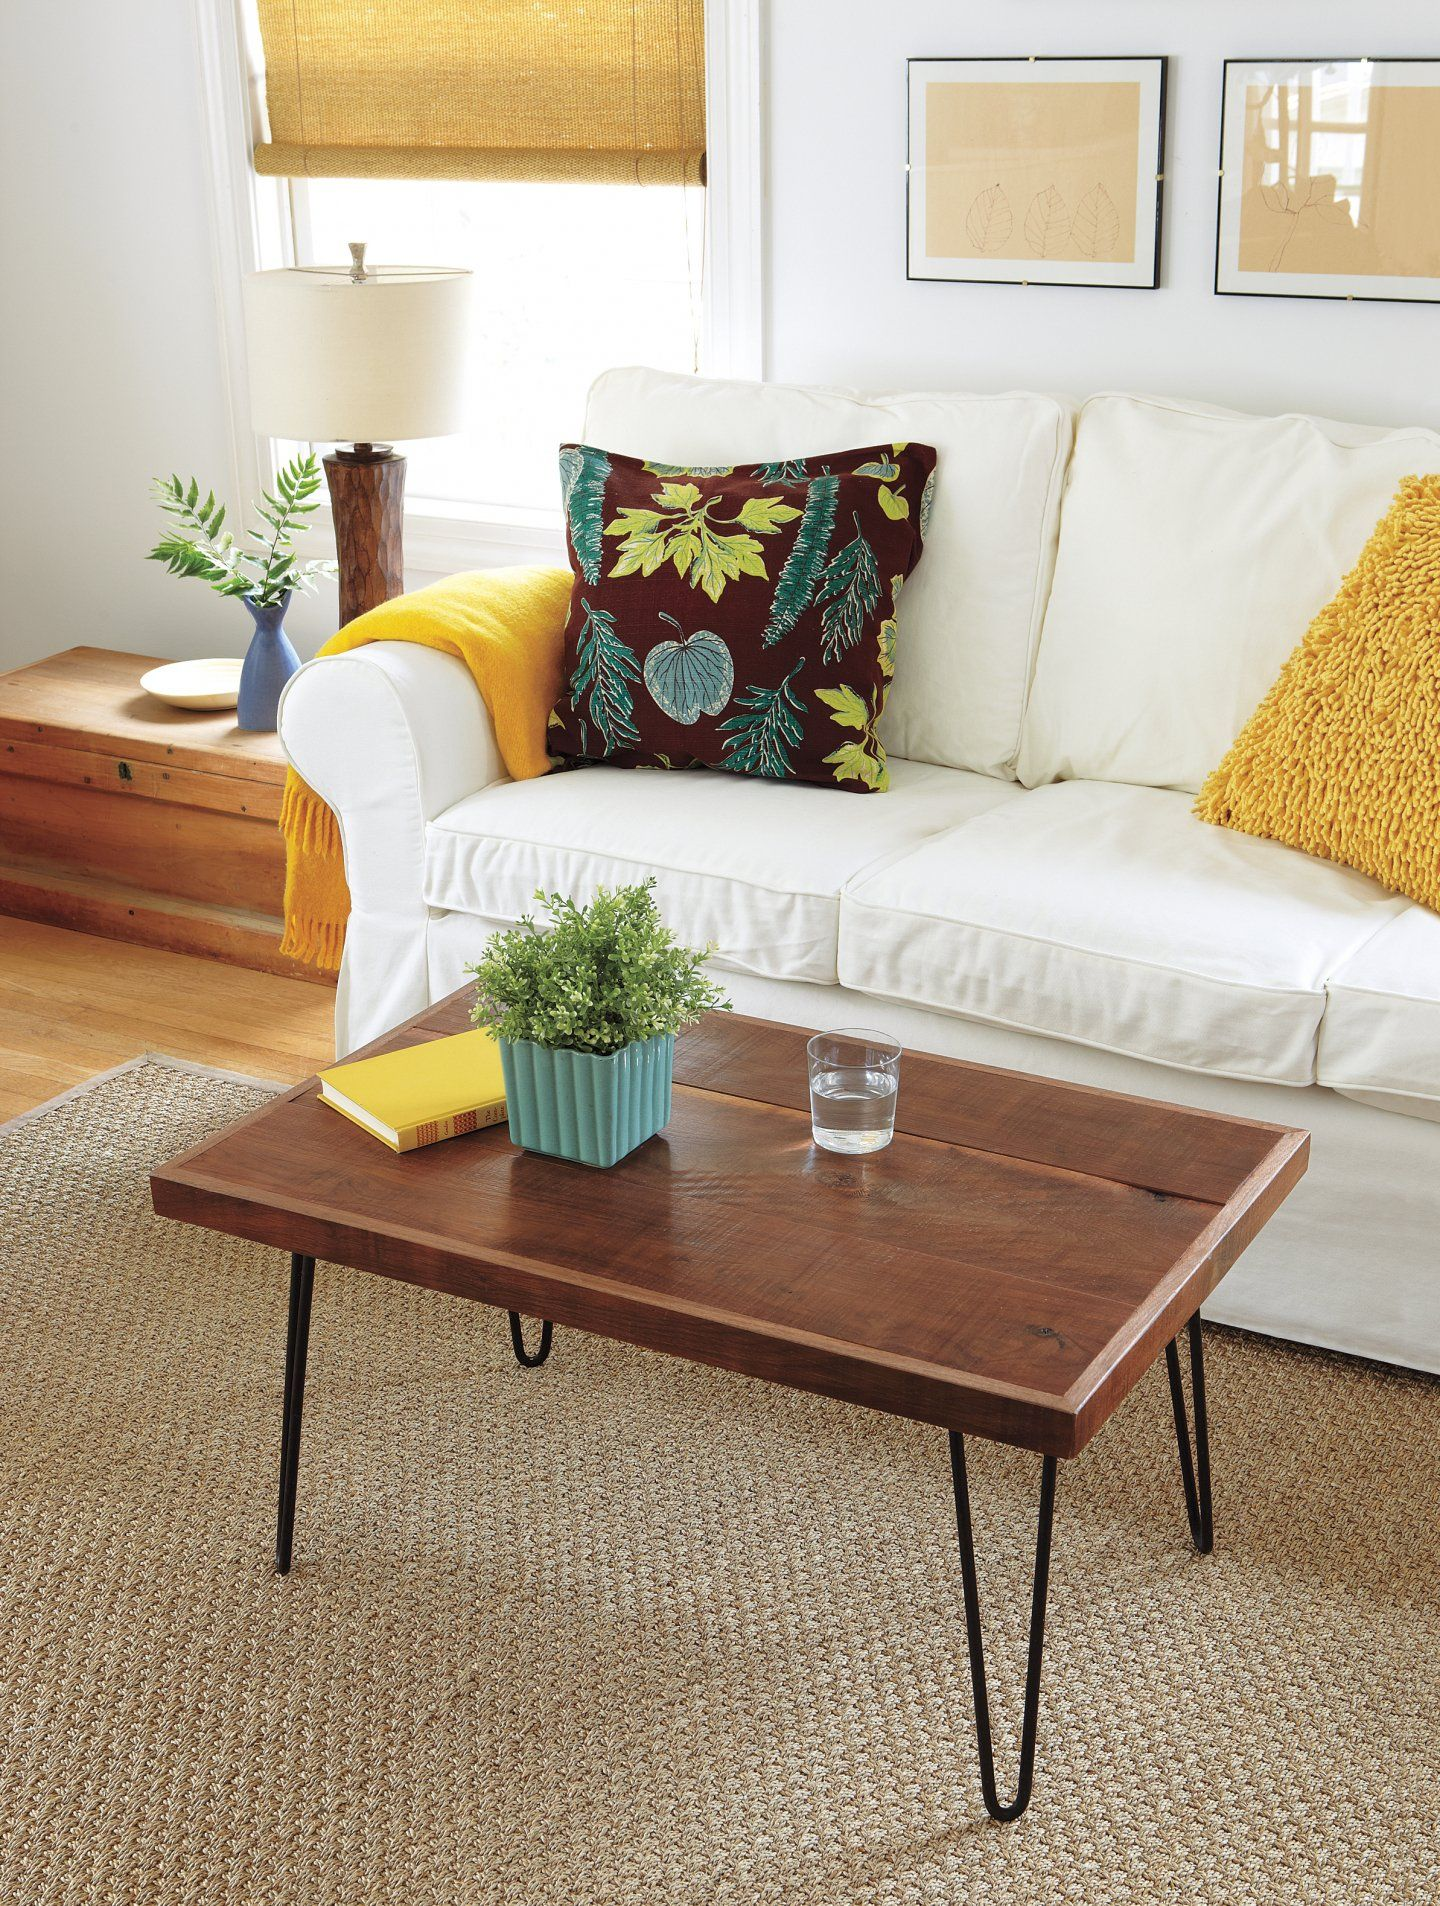 build your own bedroom furniture. 27 Ways To Build Your Own Bedroom Furniture O